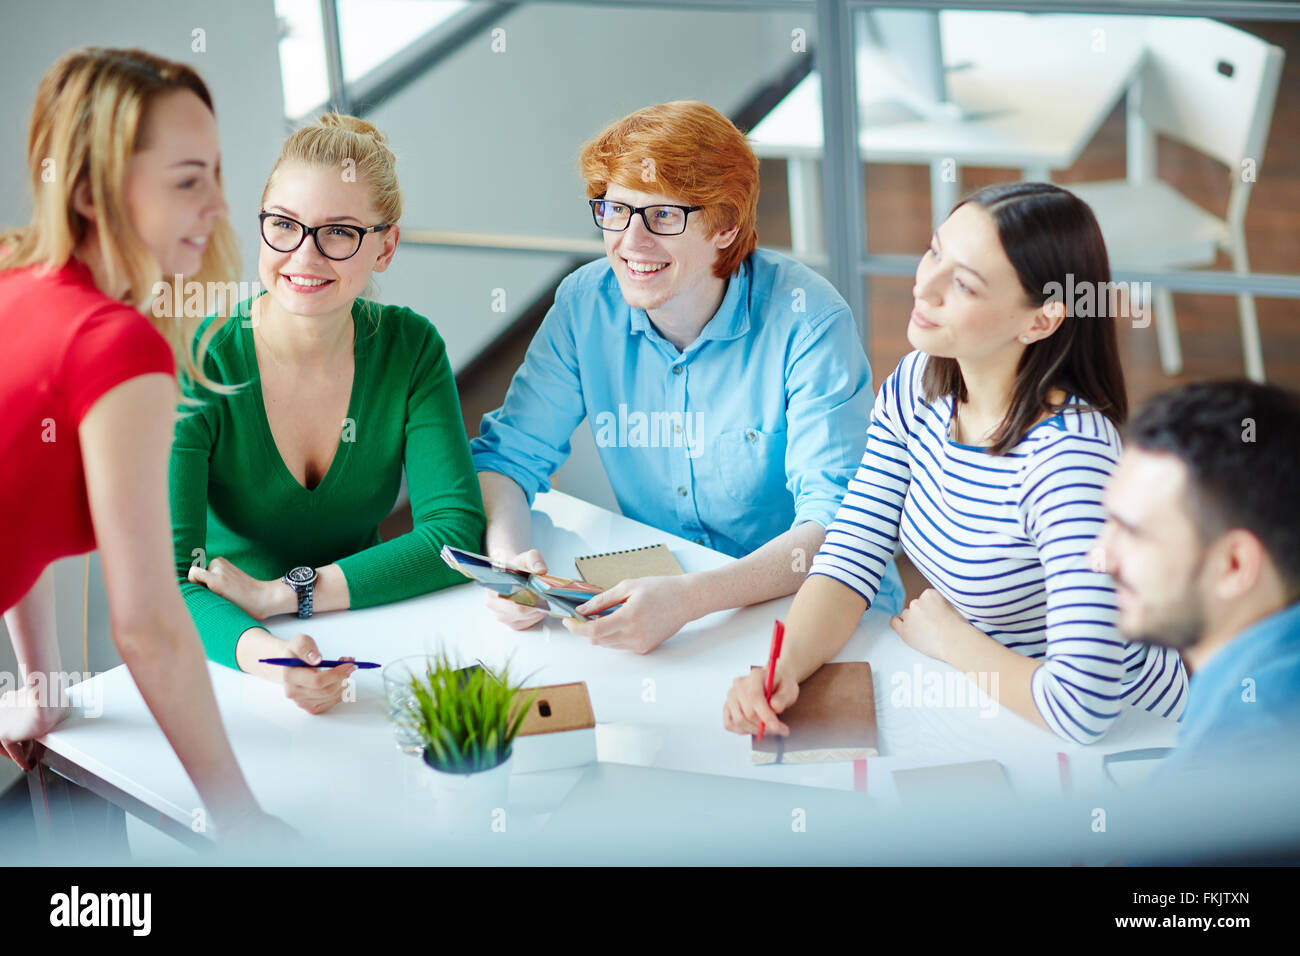 Casual people discussing something in a meeting - Stock Image